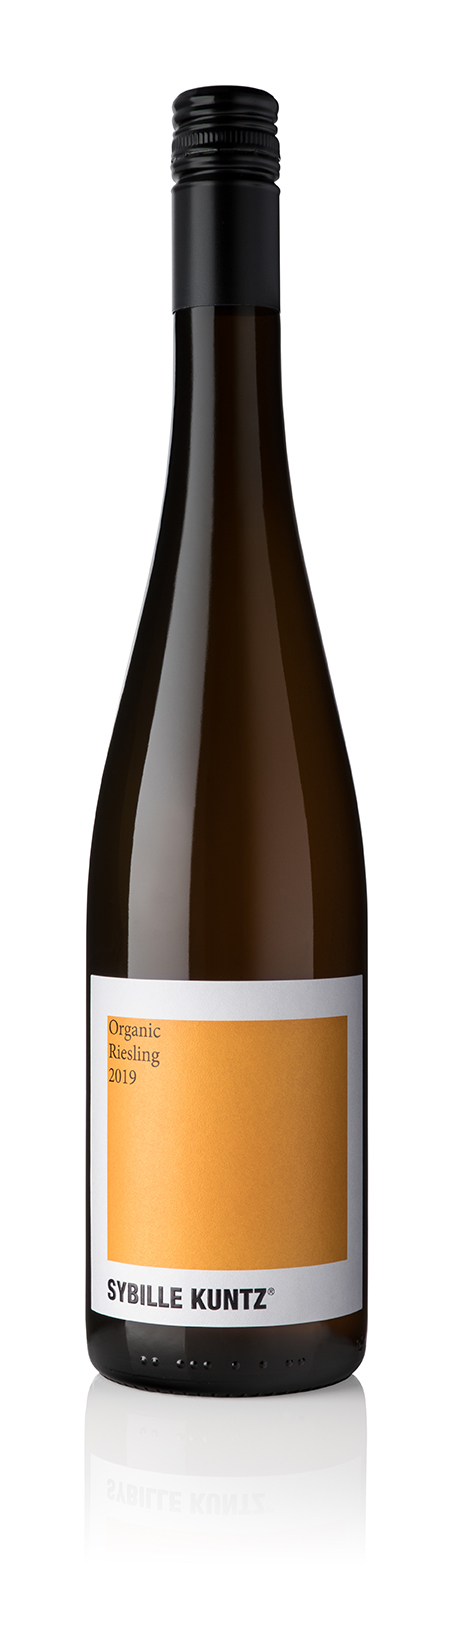 2020 SYBILLE KUNTZ Mosel-Riesling Organic Riesling 0,75 l